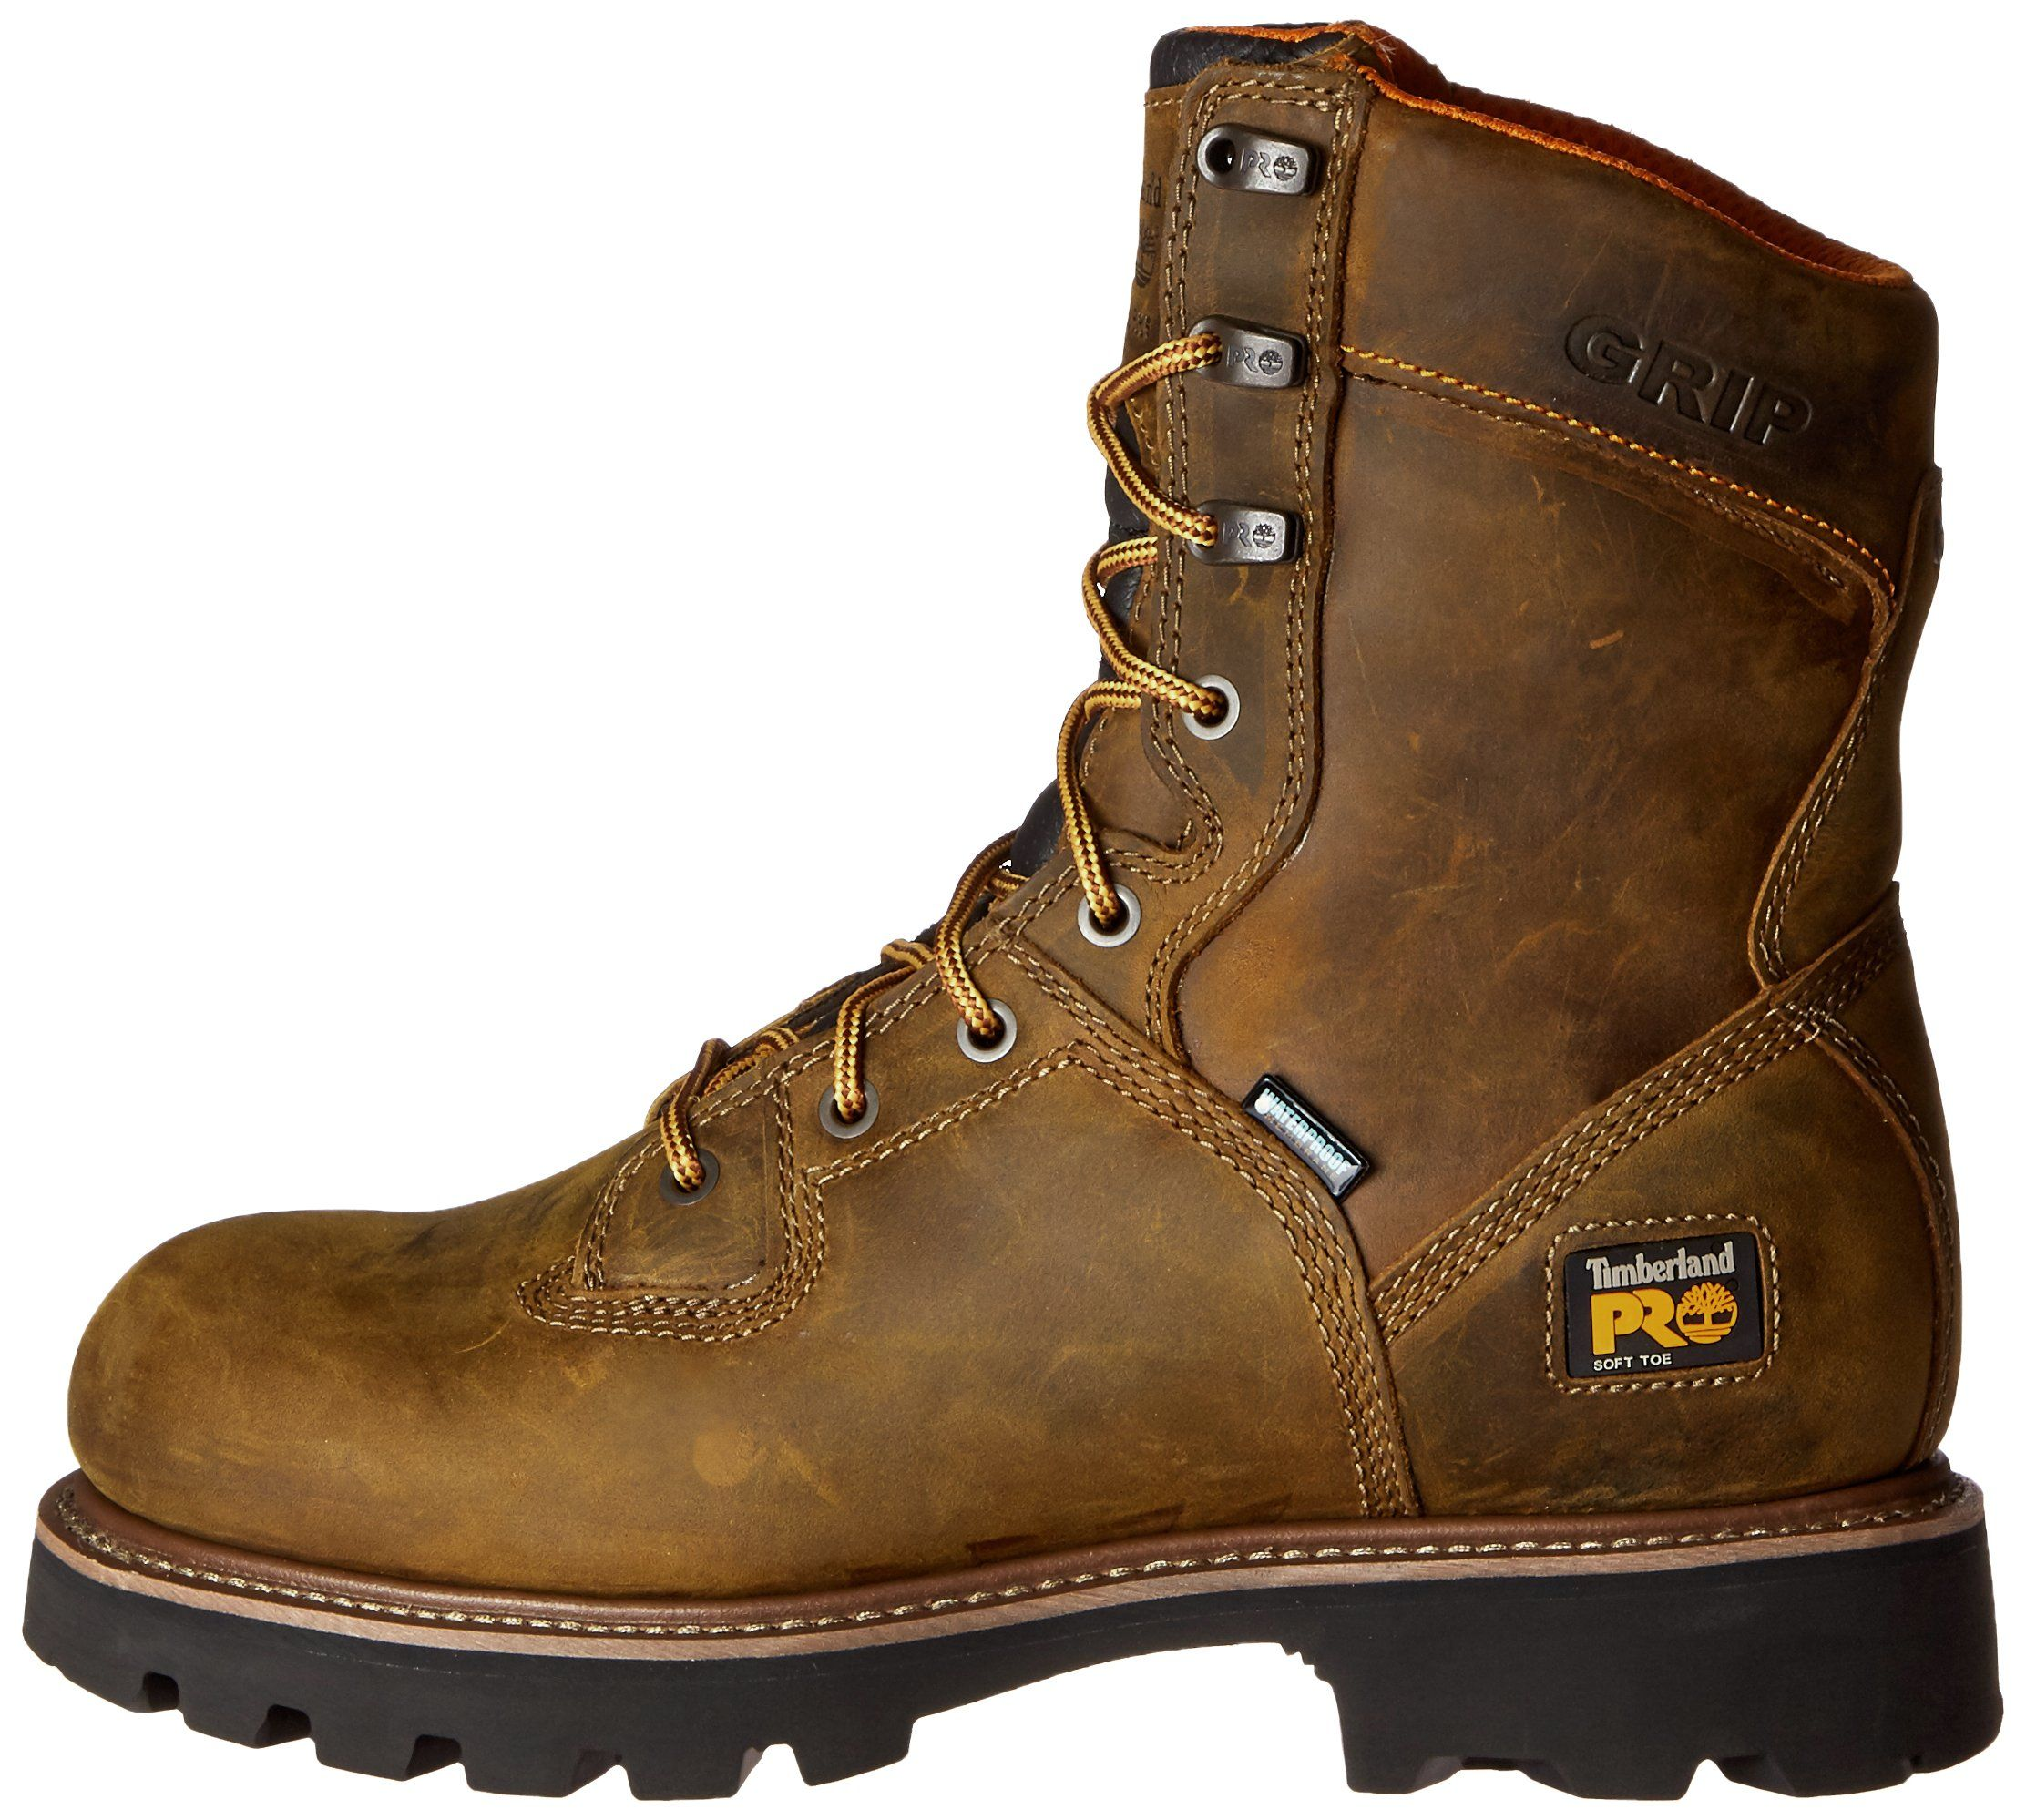 24614a907ca Timberland PRO Mens 8 Inch Crosscut Waterproof Soft Toe Logger Work ...